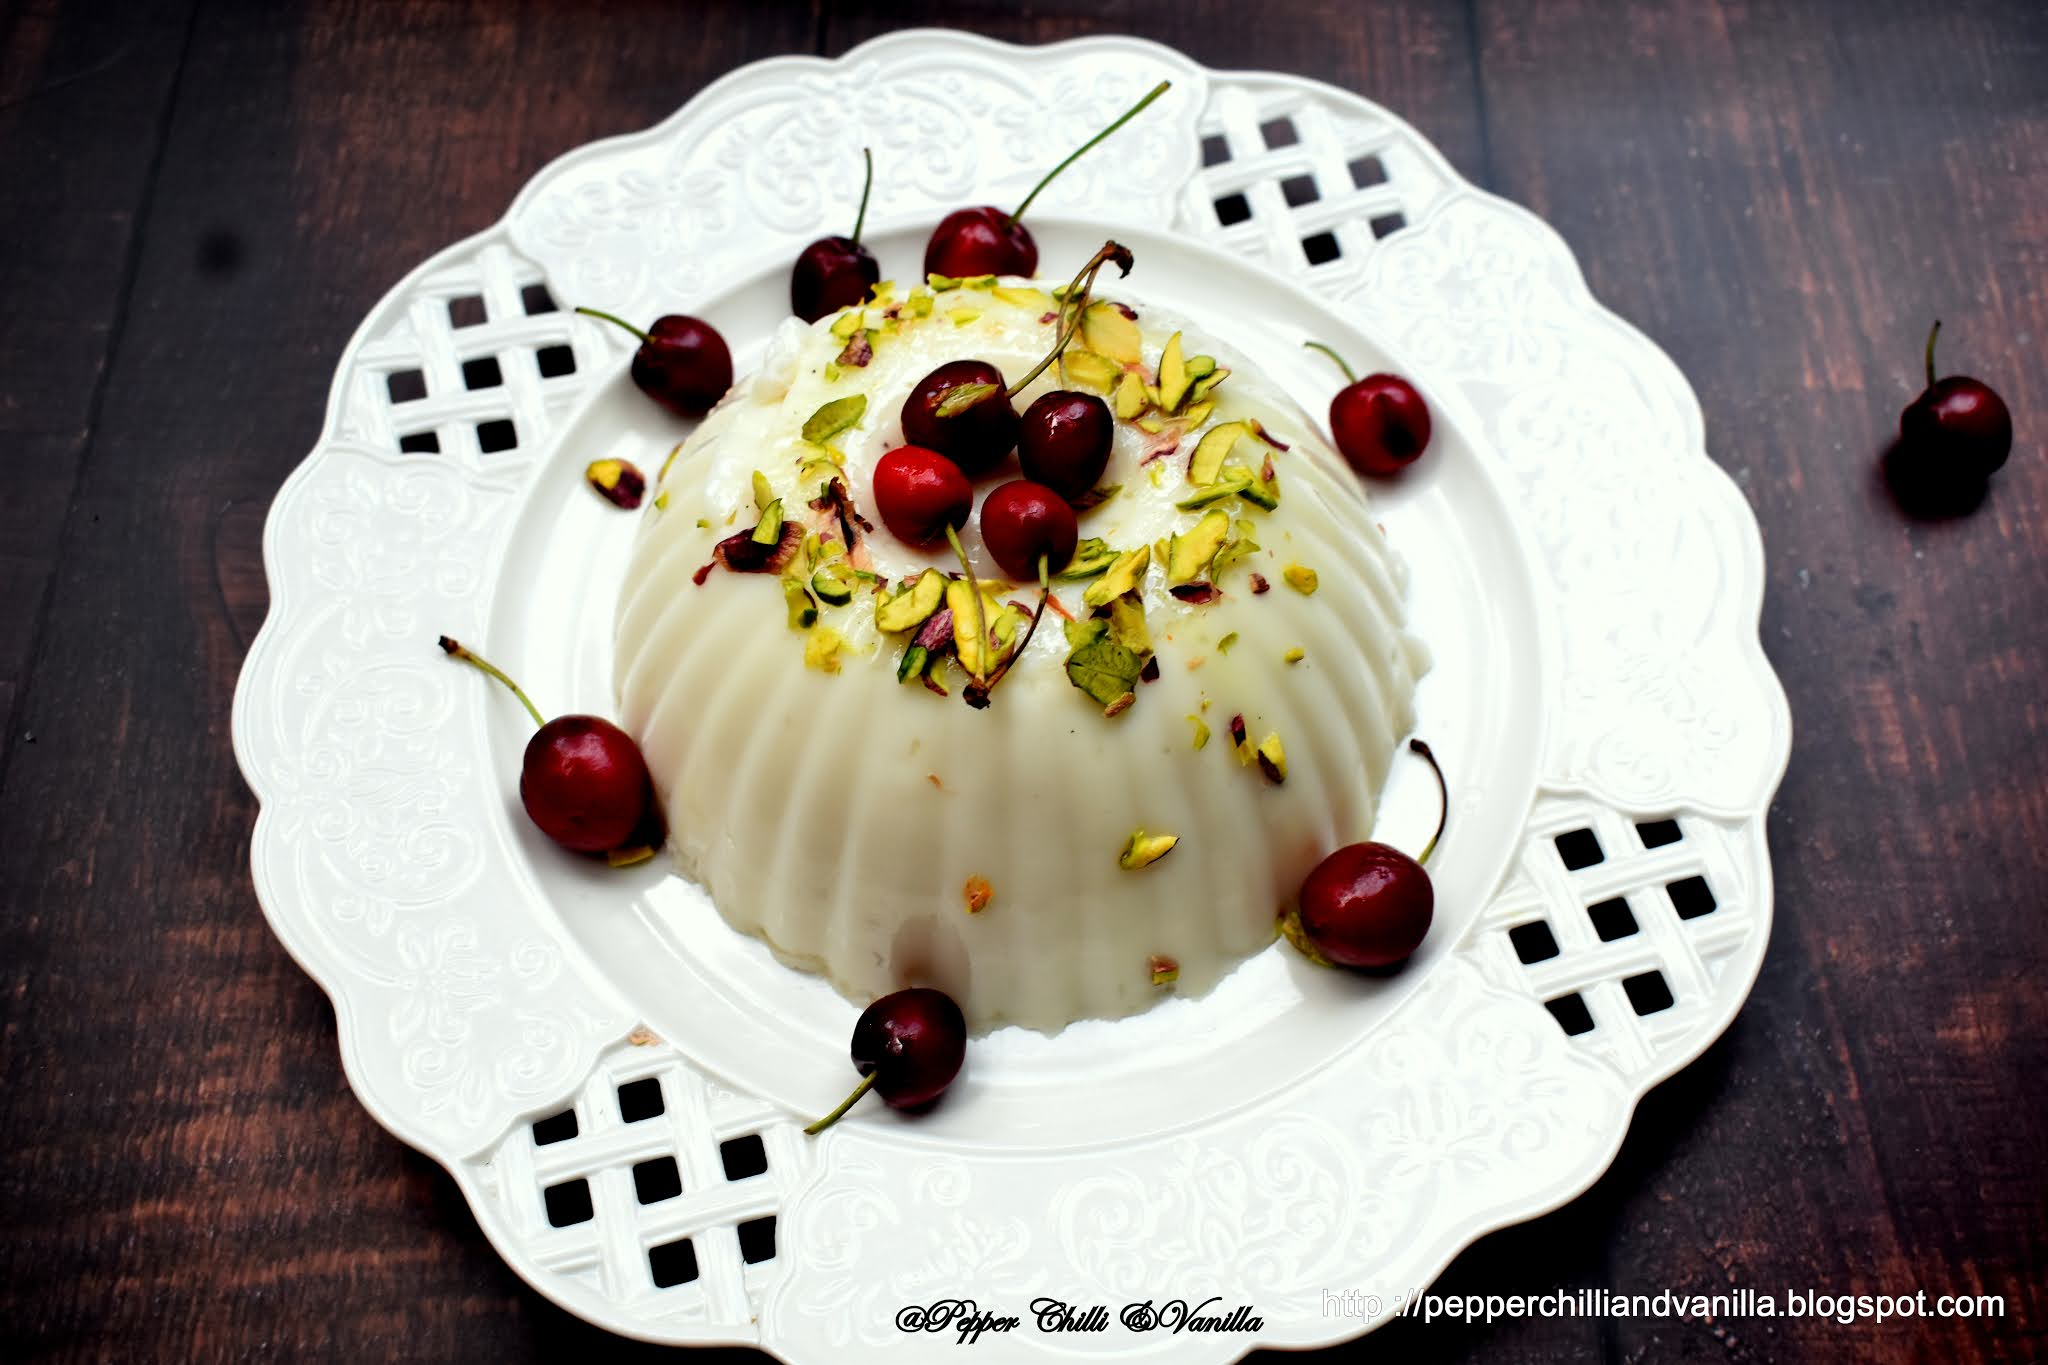 tender coconut pudding,elaneer pudding,coconut chinagrass